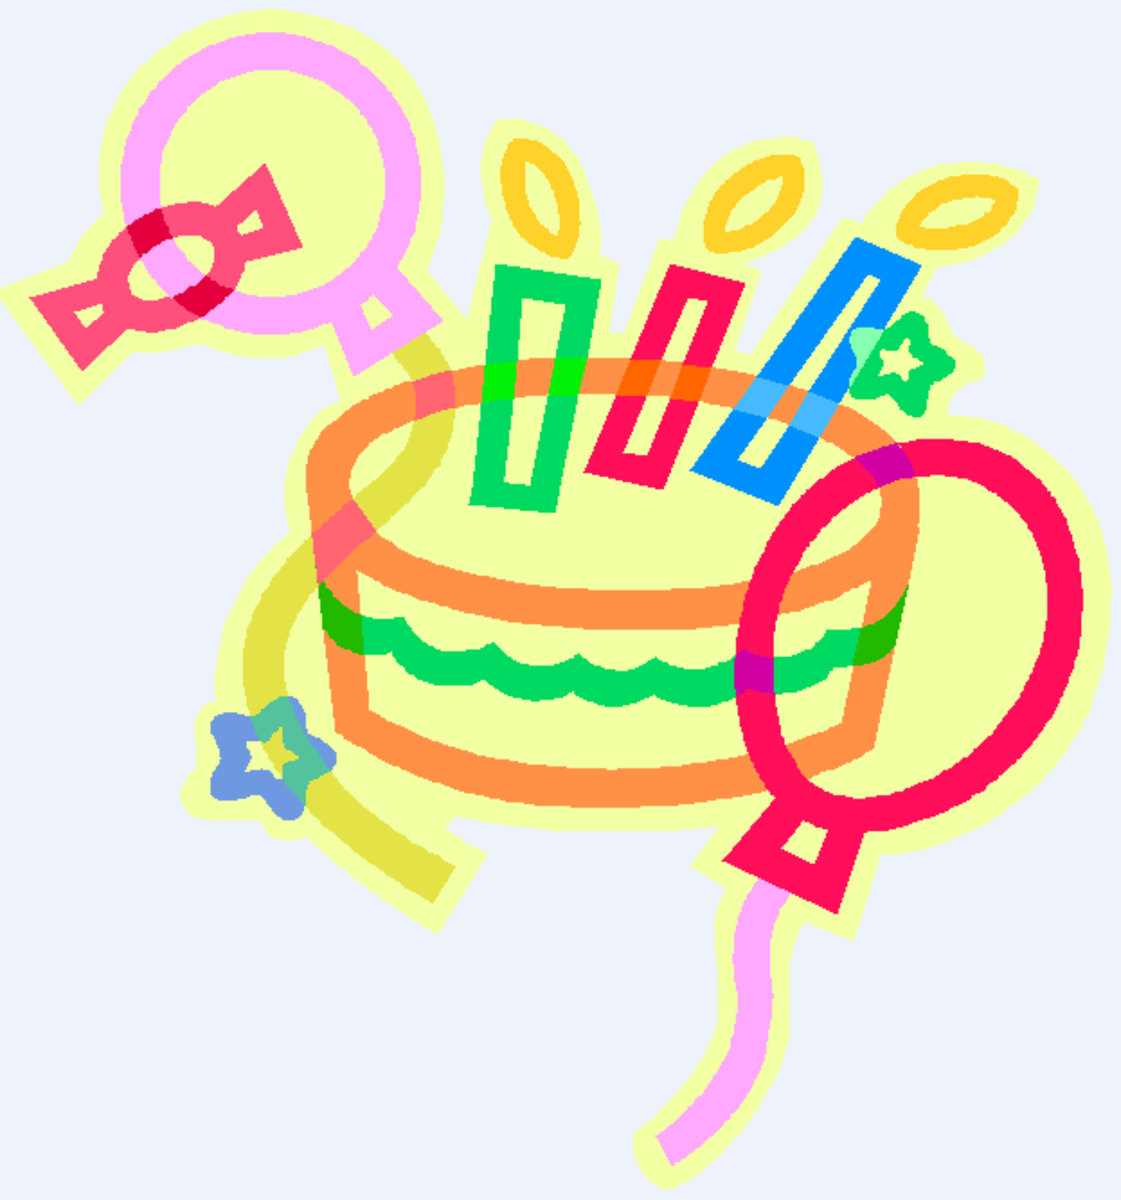 Birthday Cake, Candy and Balloons Clip Art